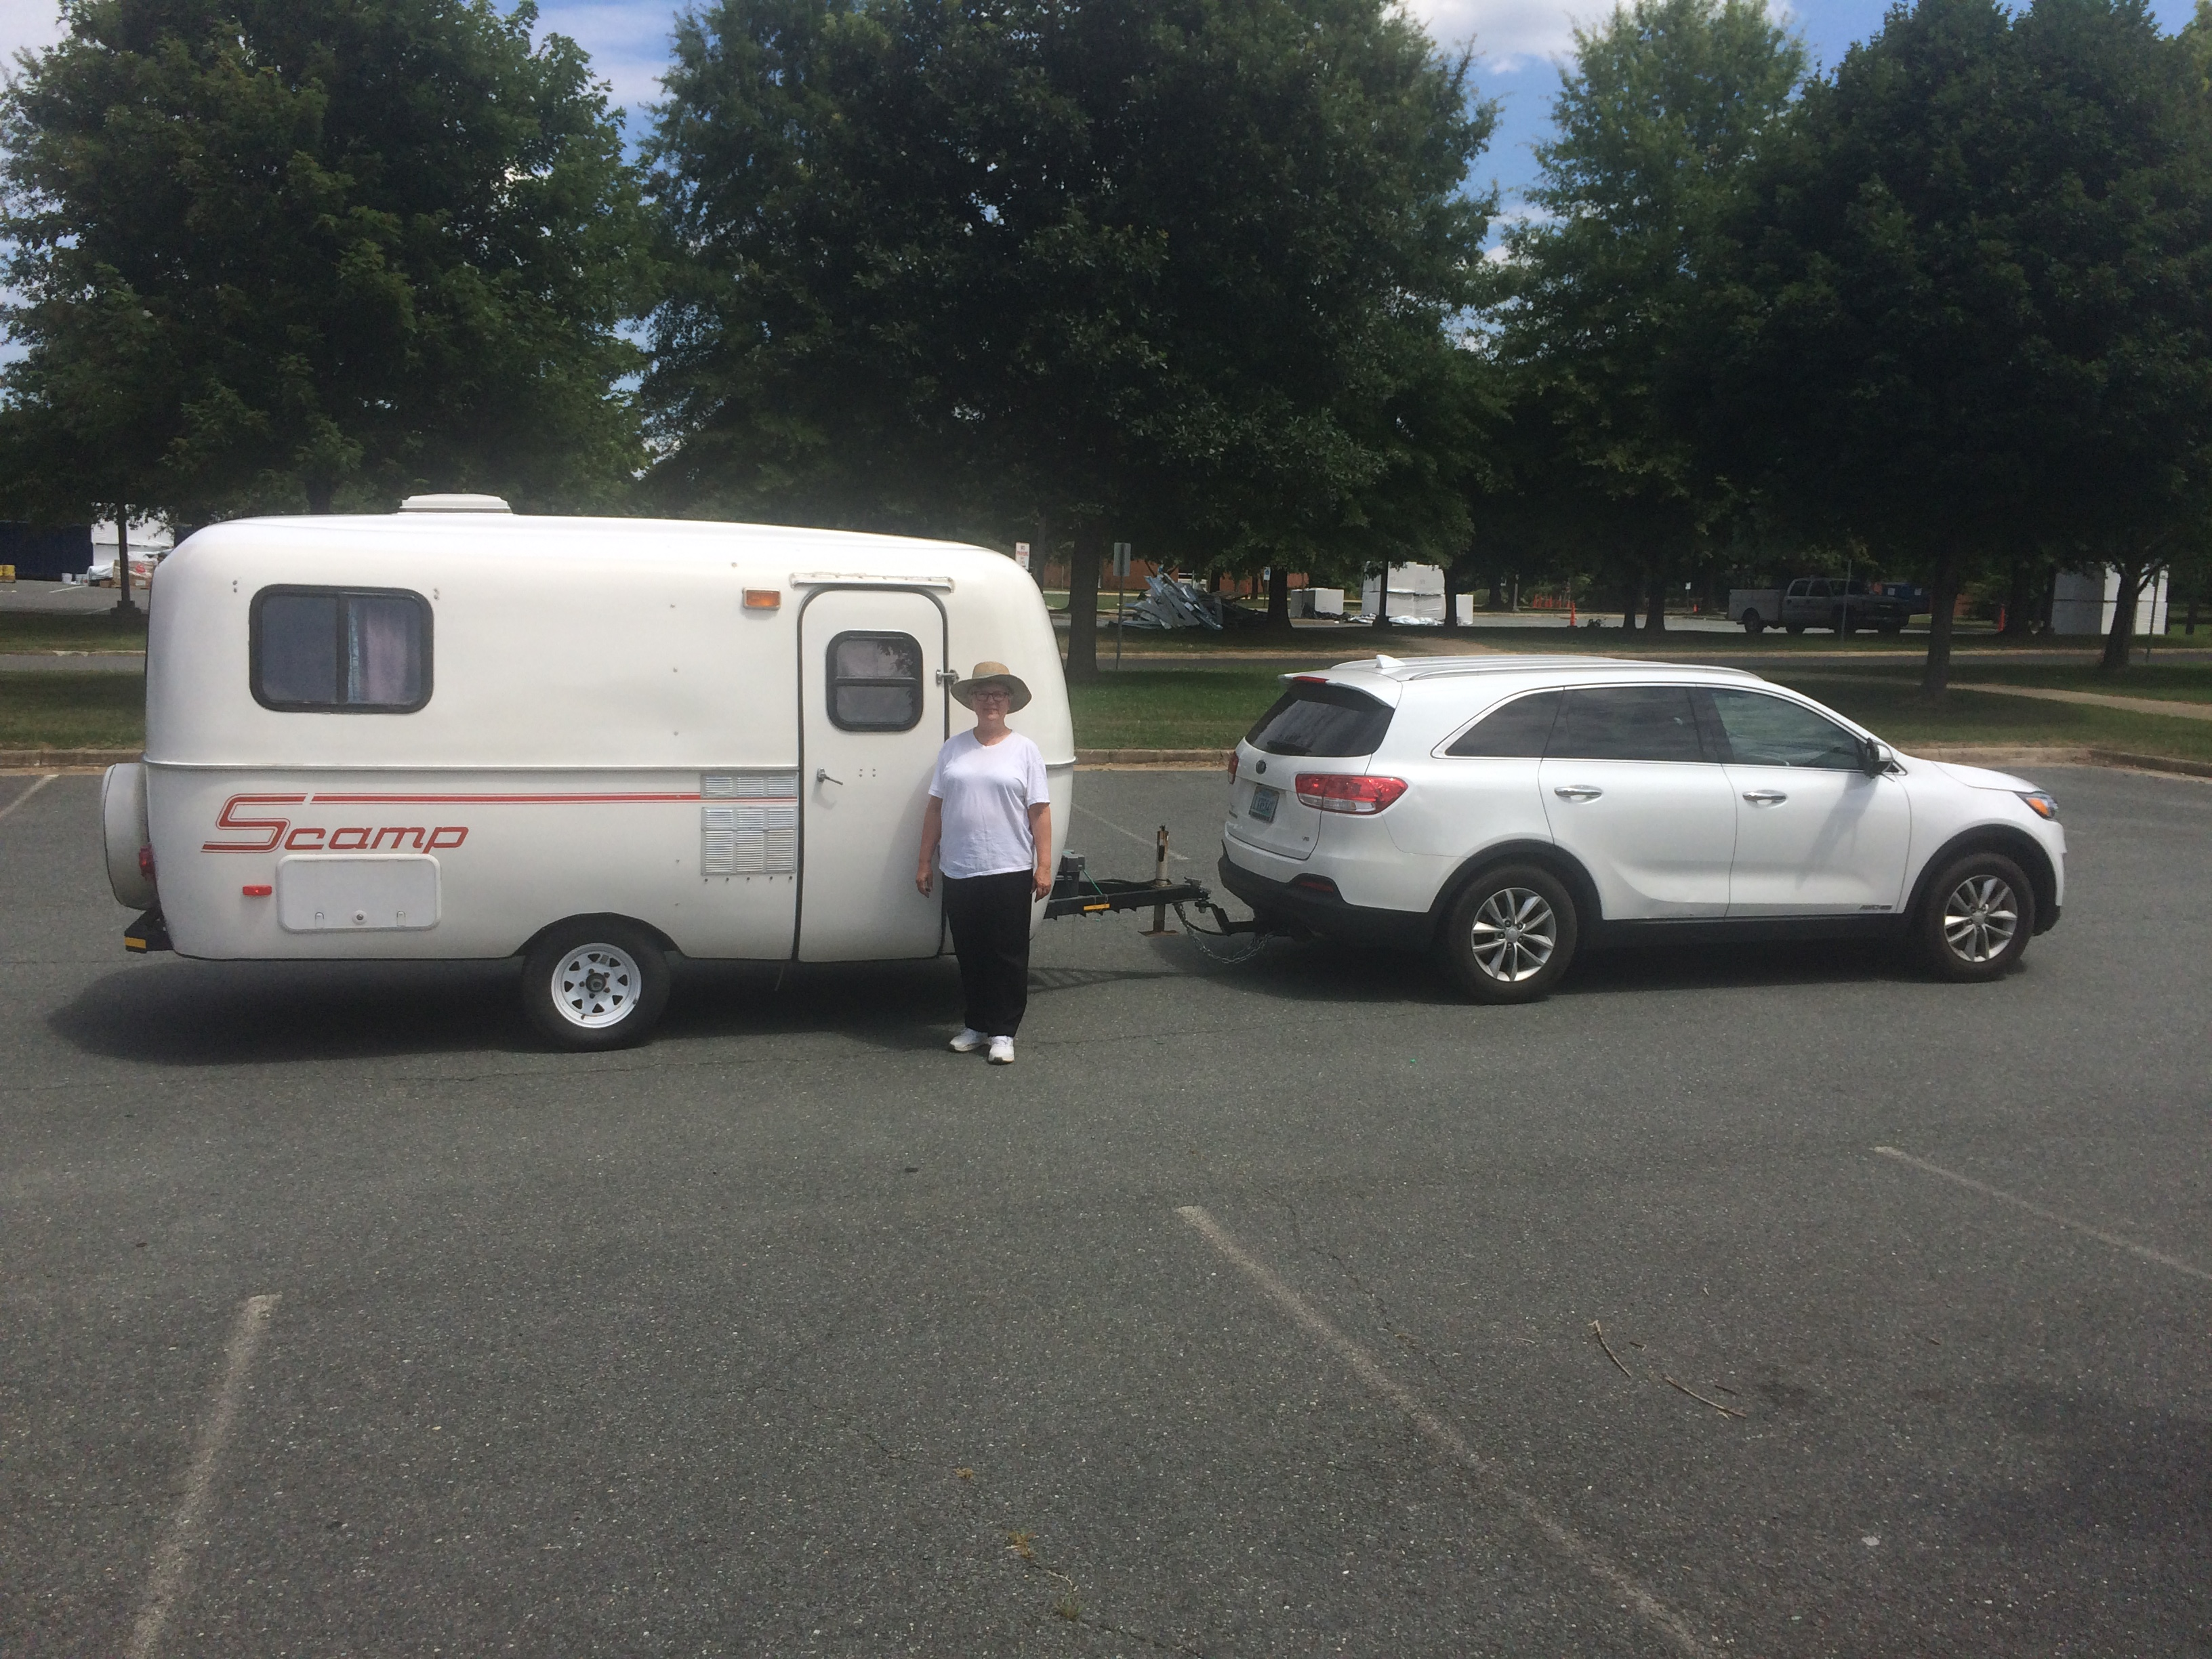 Towing Soul Journer Jpg 3264x2448 Kia Soul Towing